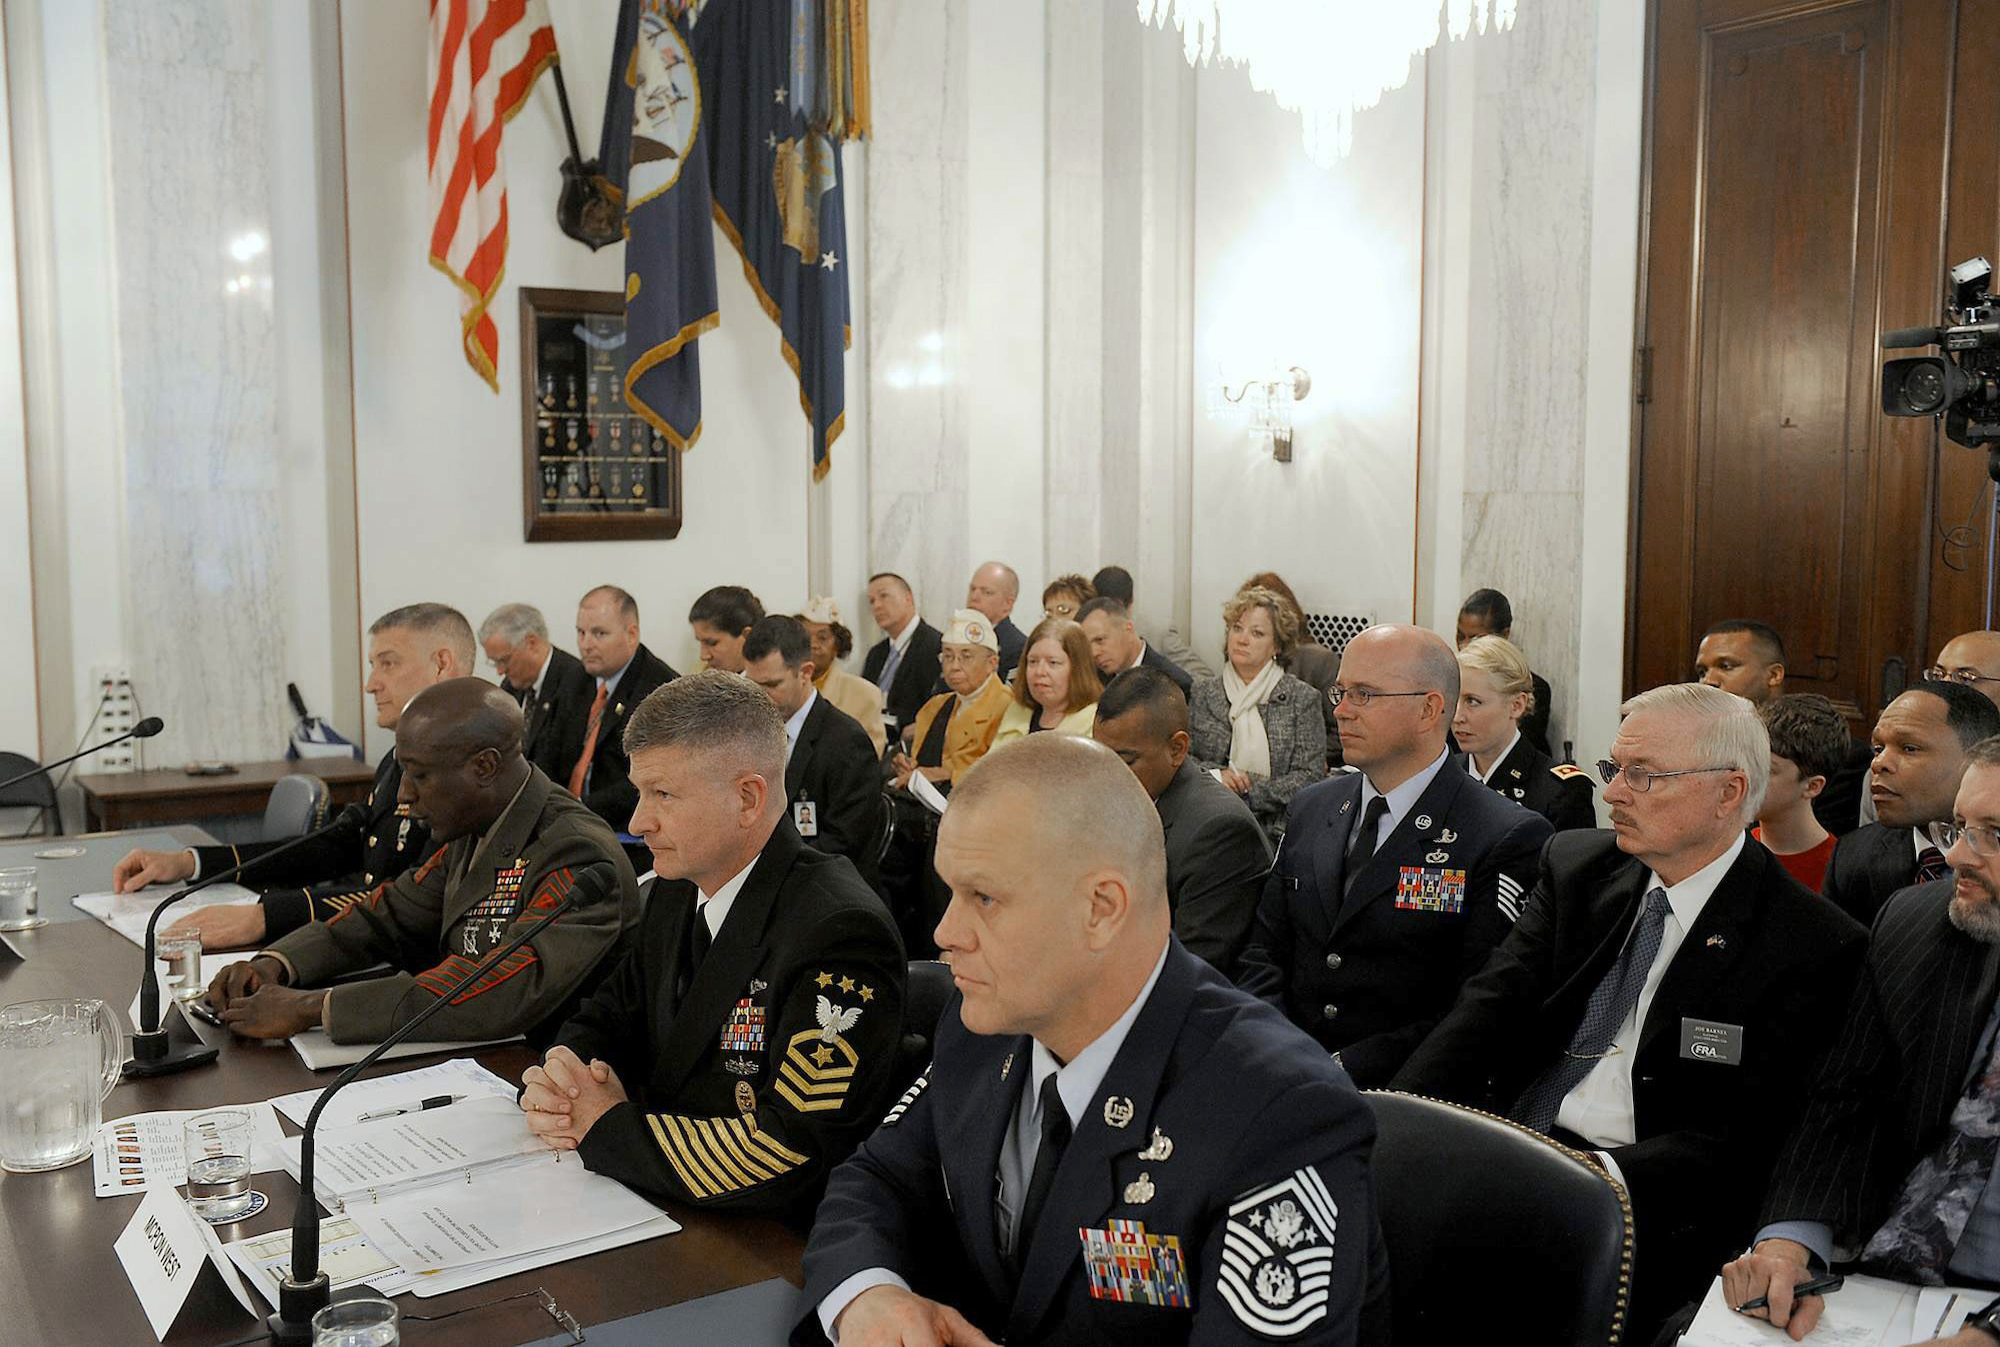 Chief Master Sgt. of the Air Force James A. Roy (right) shares the witness stand while Sgt. Maj. of the Marine Corps Carlton Kent delivers his opening statement during a Senate Armed Services subcommittee hearing on military personnel issues April 13, 2011, in Washington. Also testifying were Sgt. Maj. of the Army Raymond Chandler III and Master Chief Petty Officer of the Navy Rick West. (U.S. Air Force photo/Scott M. Ash)